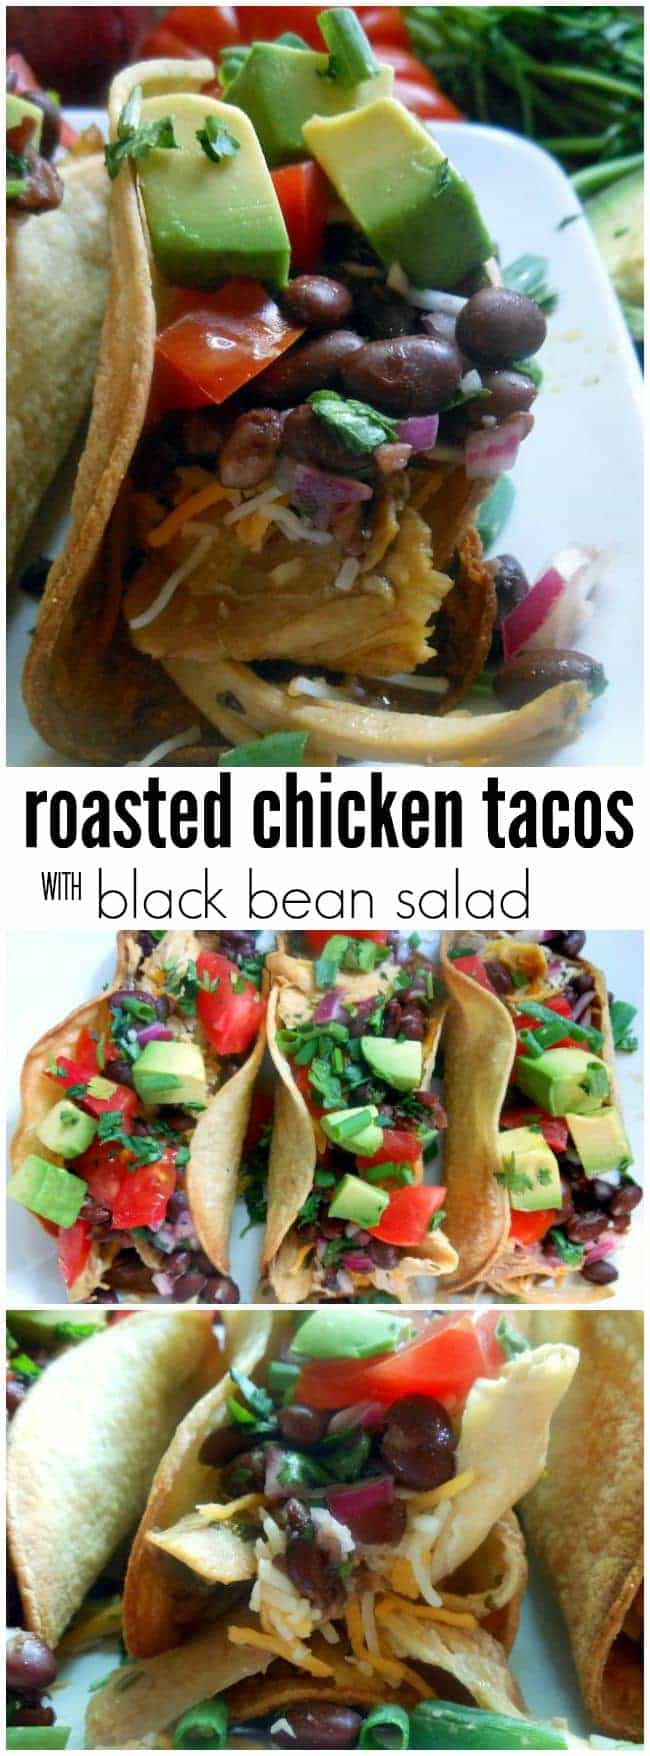 Roasted Chicken Tacos Recipe with Black Bean Salad